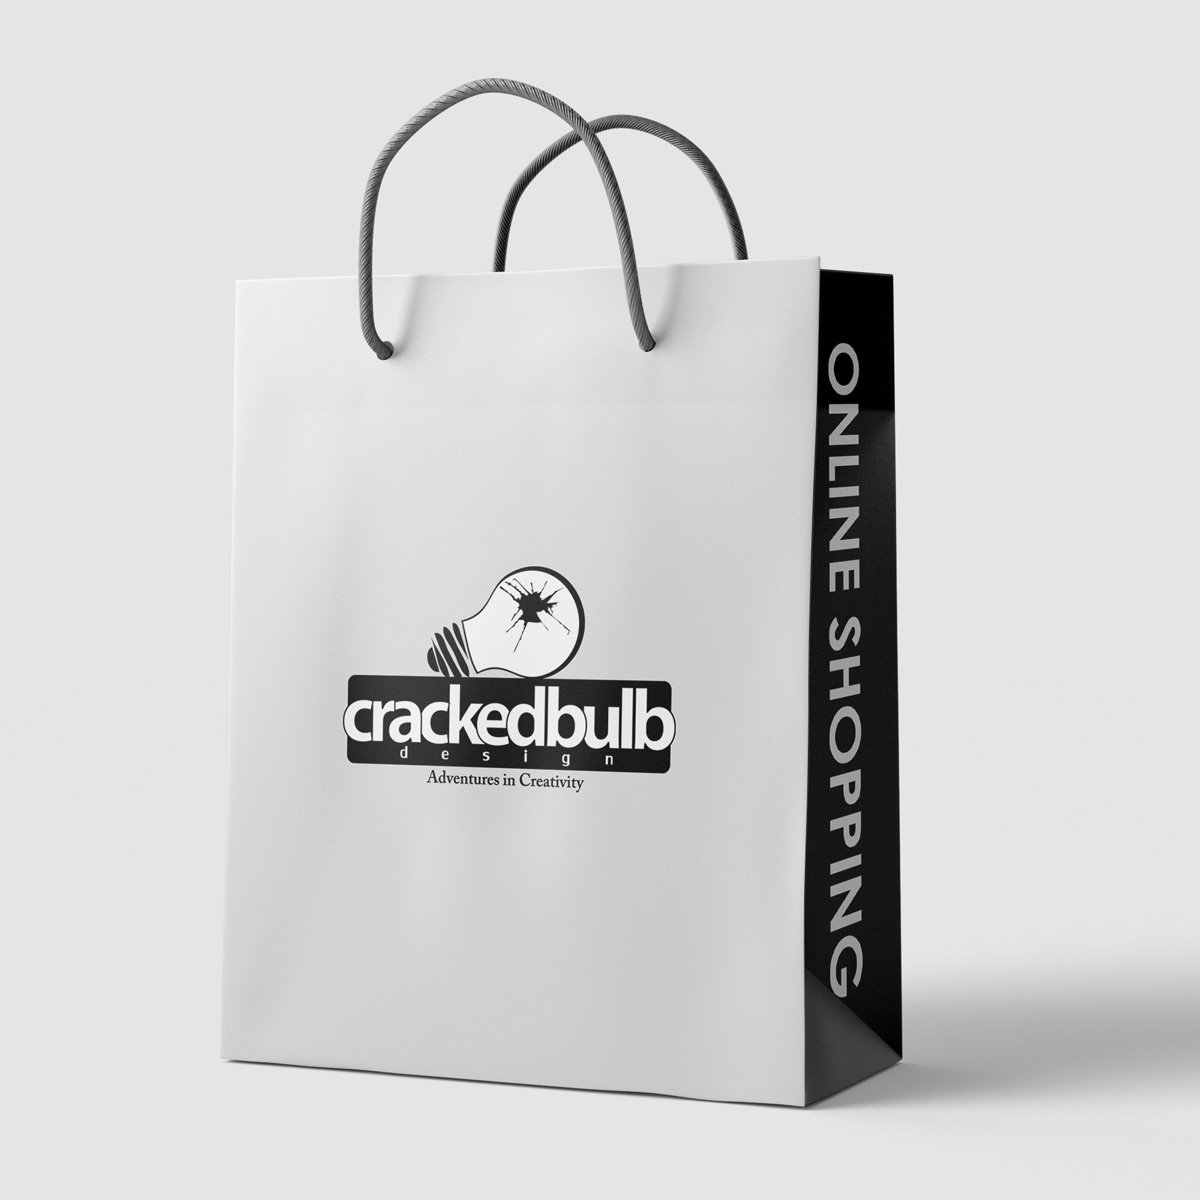 cracked-bulb-online-shopping-ecommerce